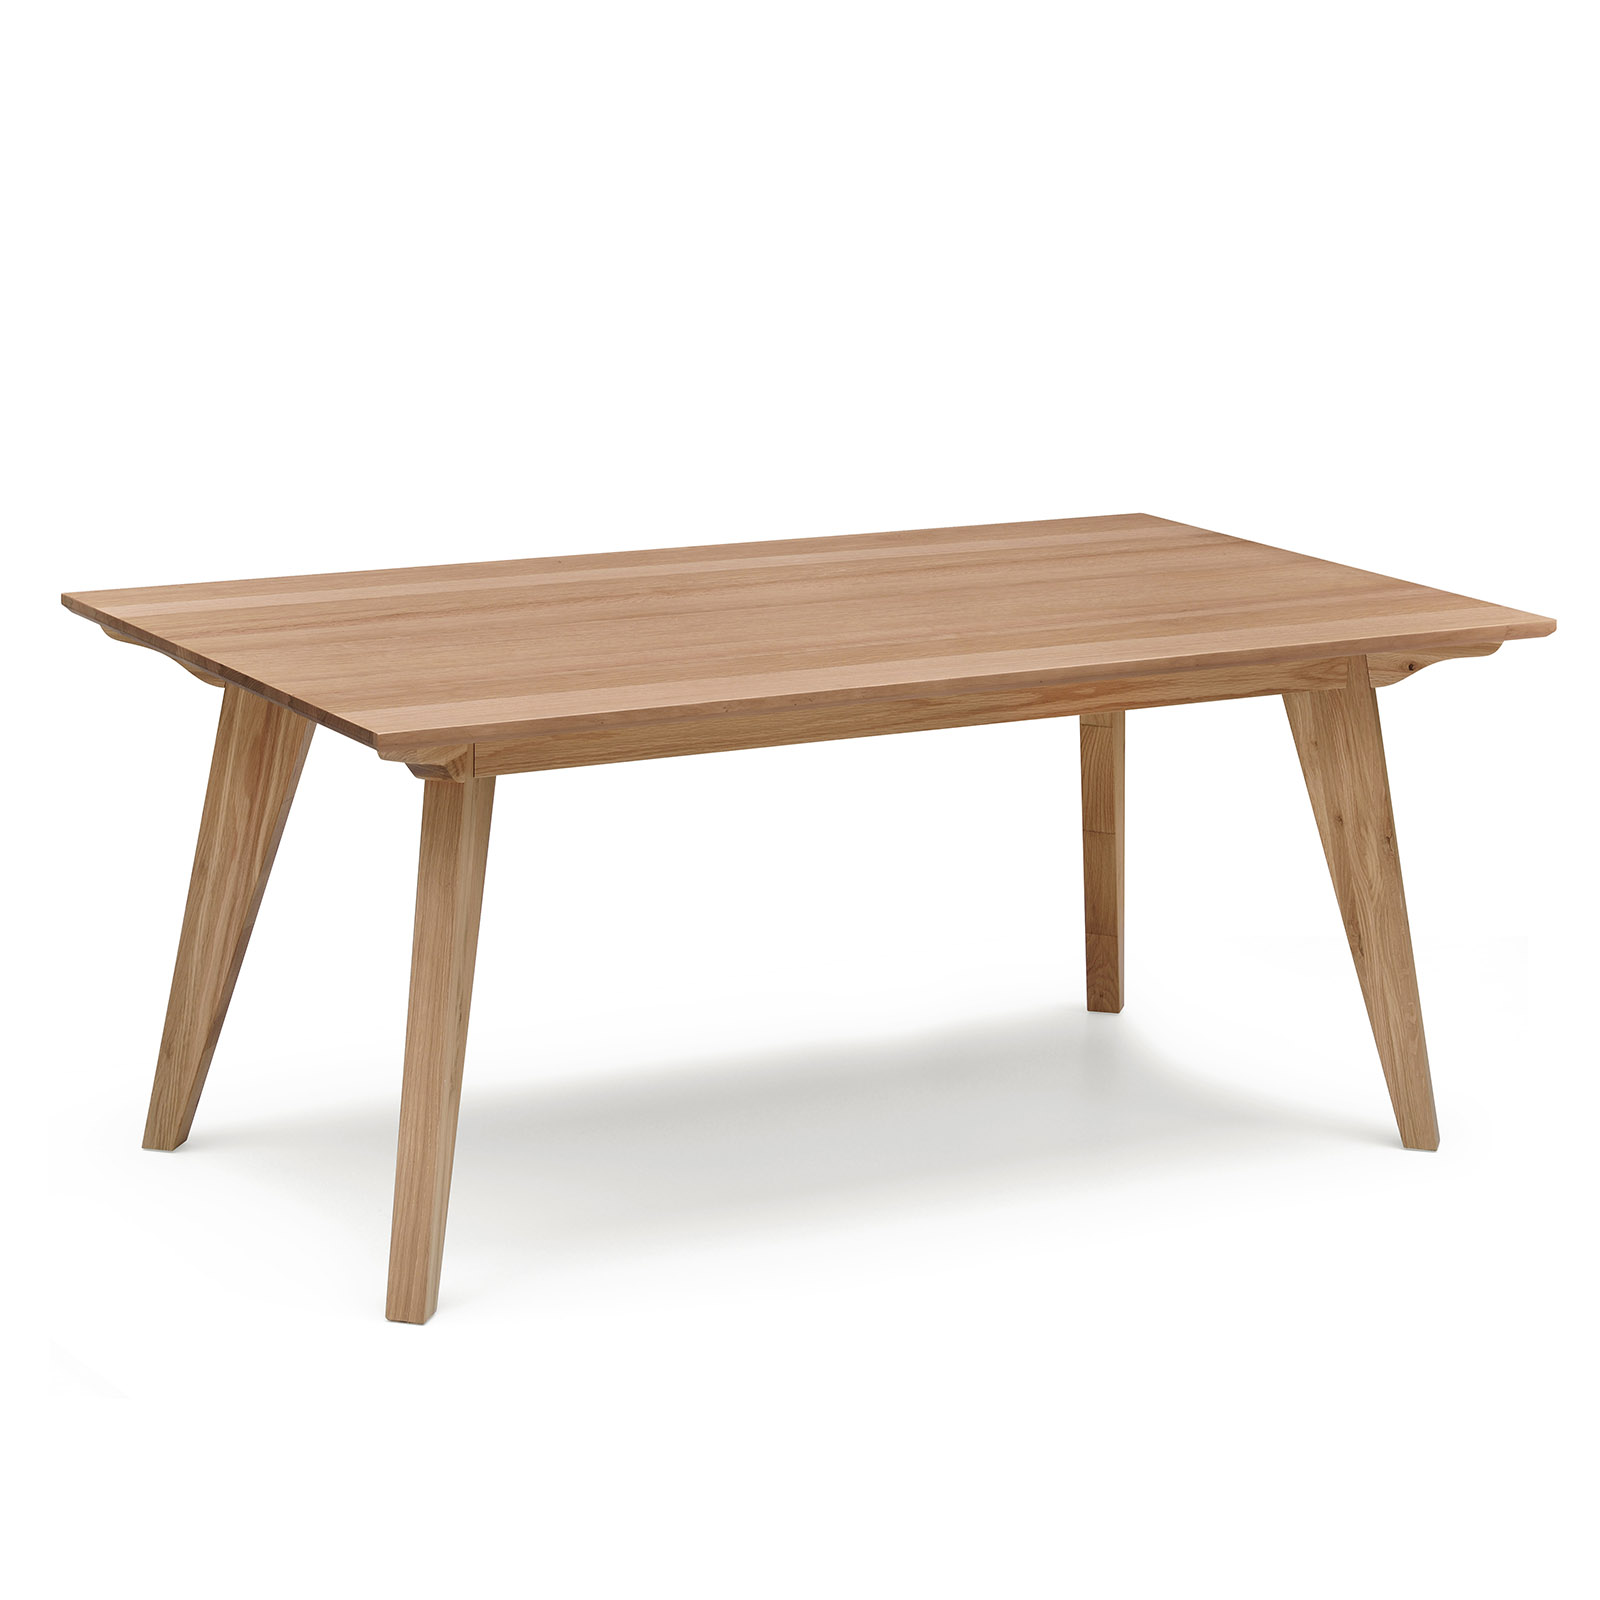 alison white oak natural veneer dining table modern design ebay. Black Bedroom Furniture Sets. Home Design Ideas